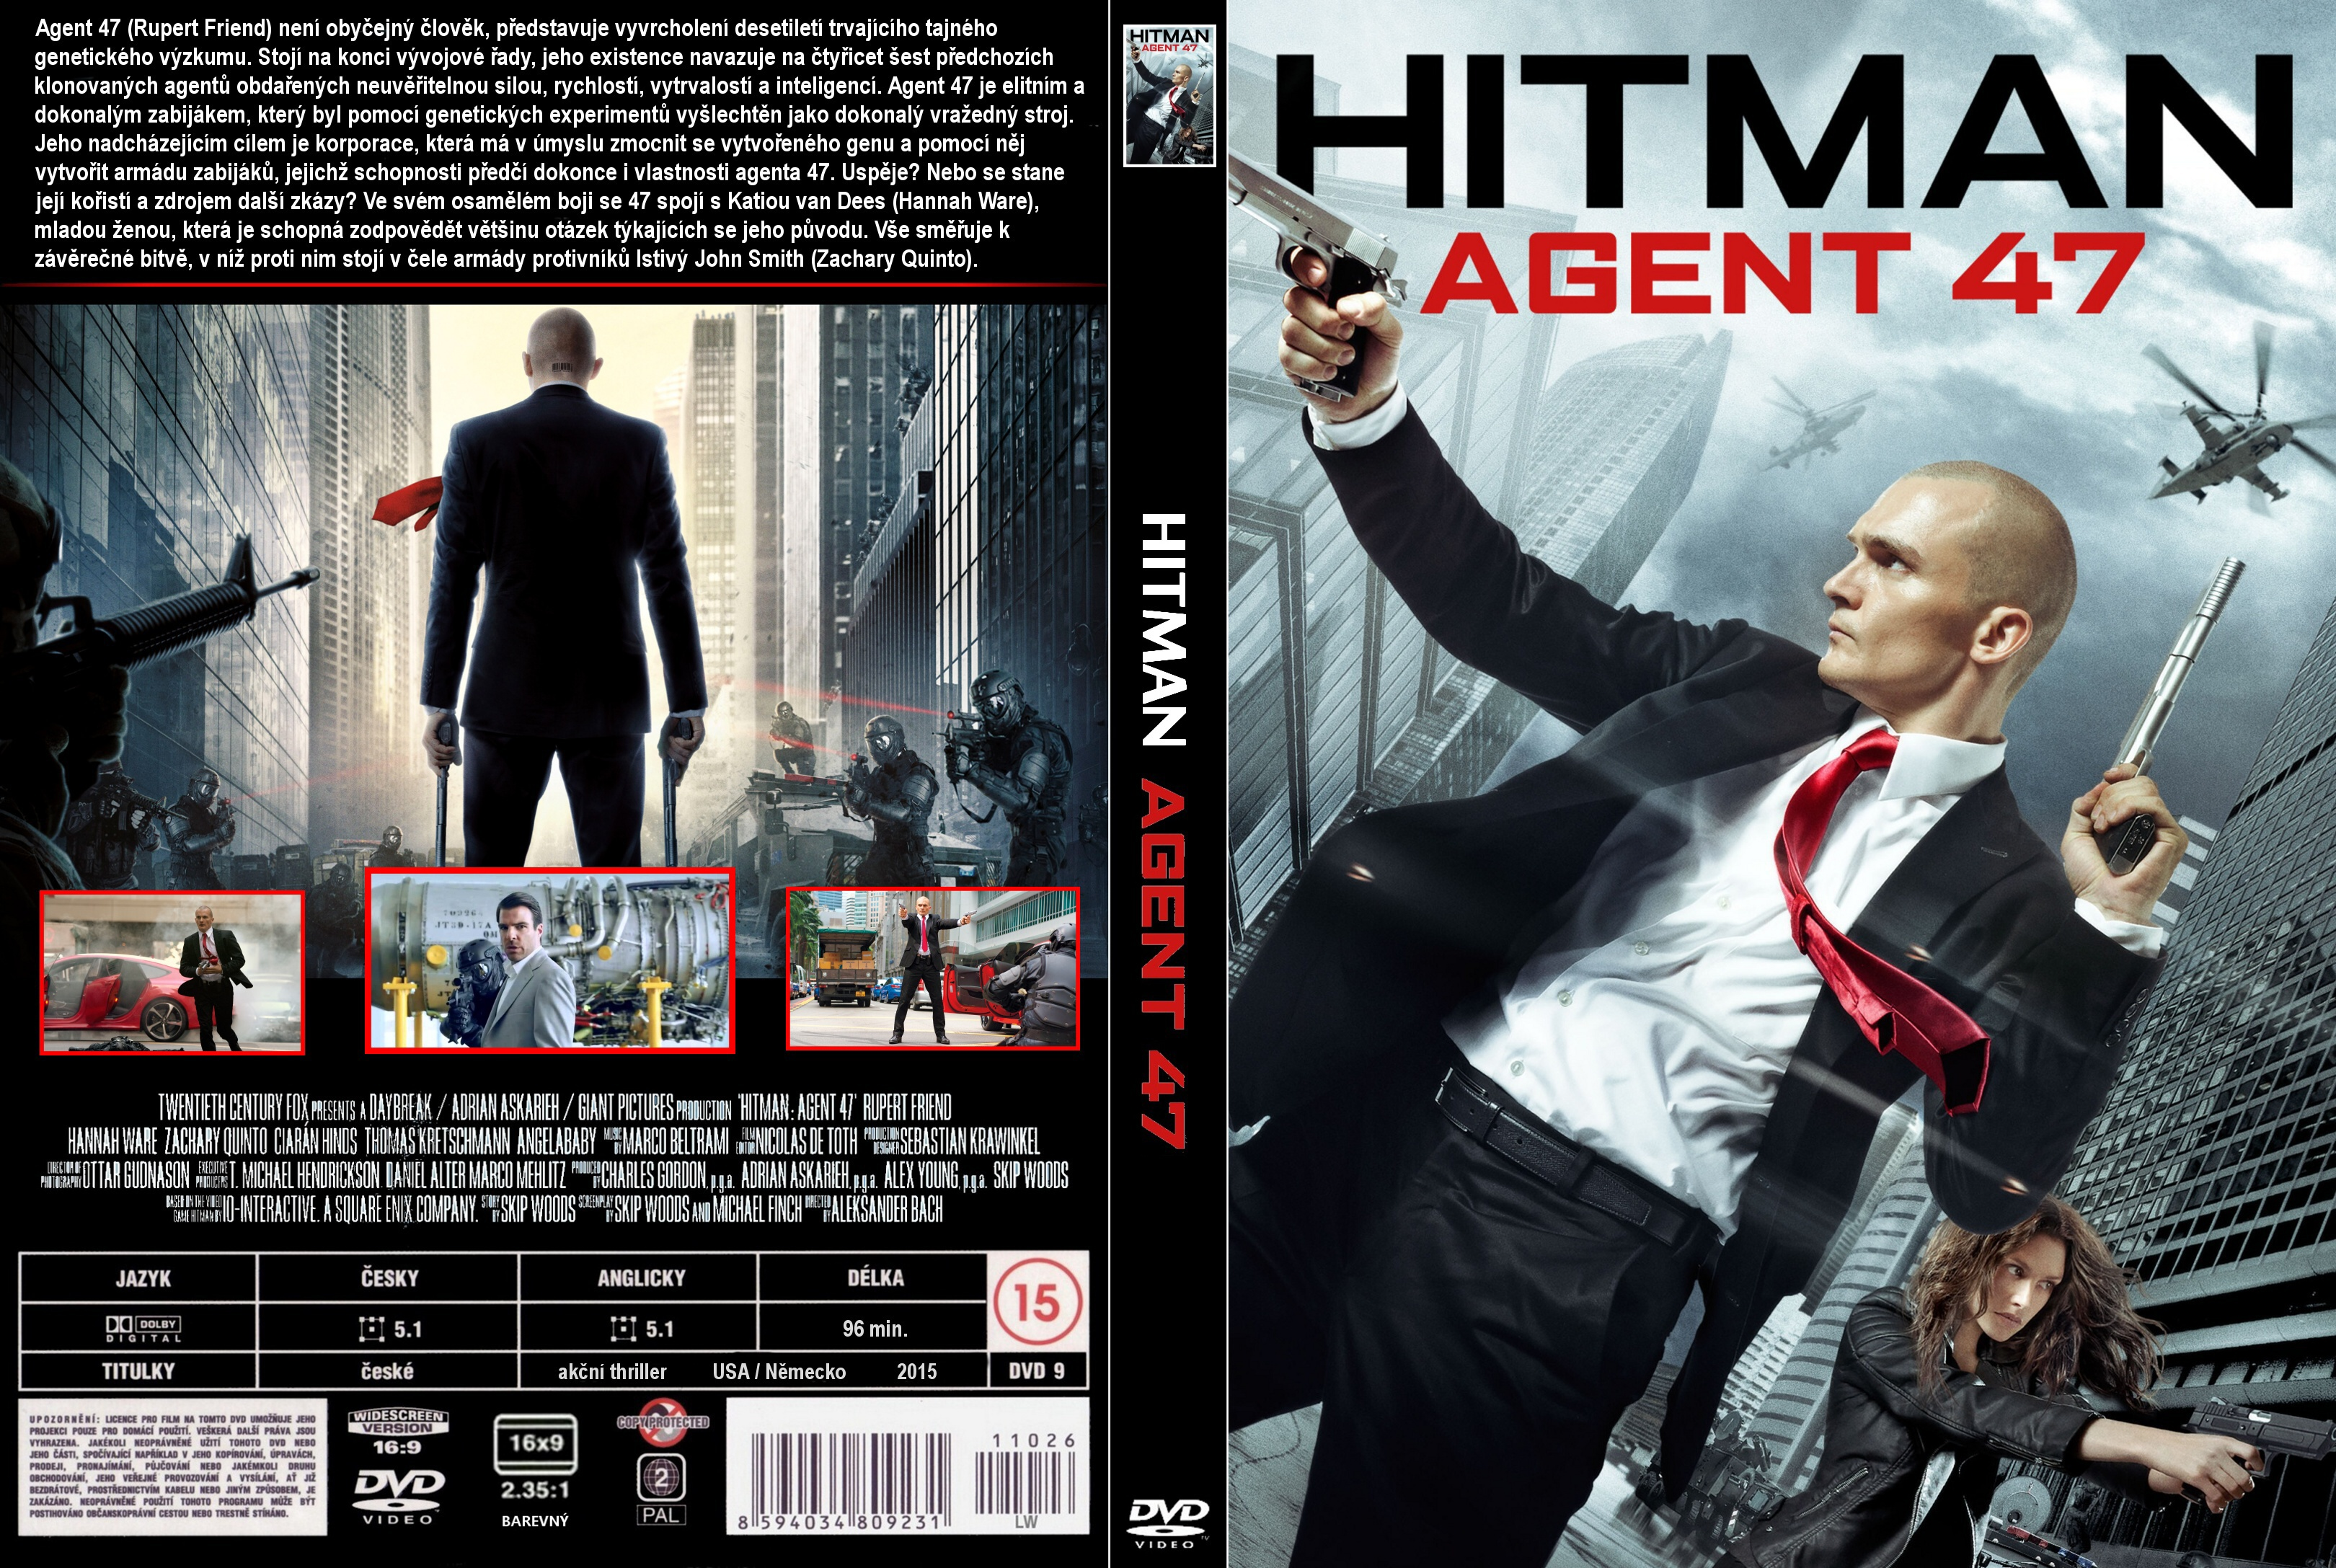 Covers Box Sk Hitman Agent 47 2015 High Quality Dvd